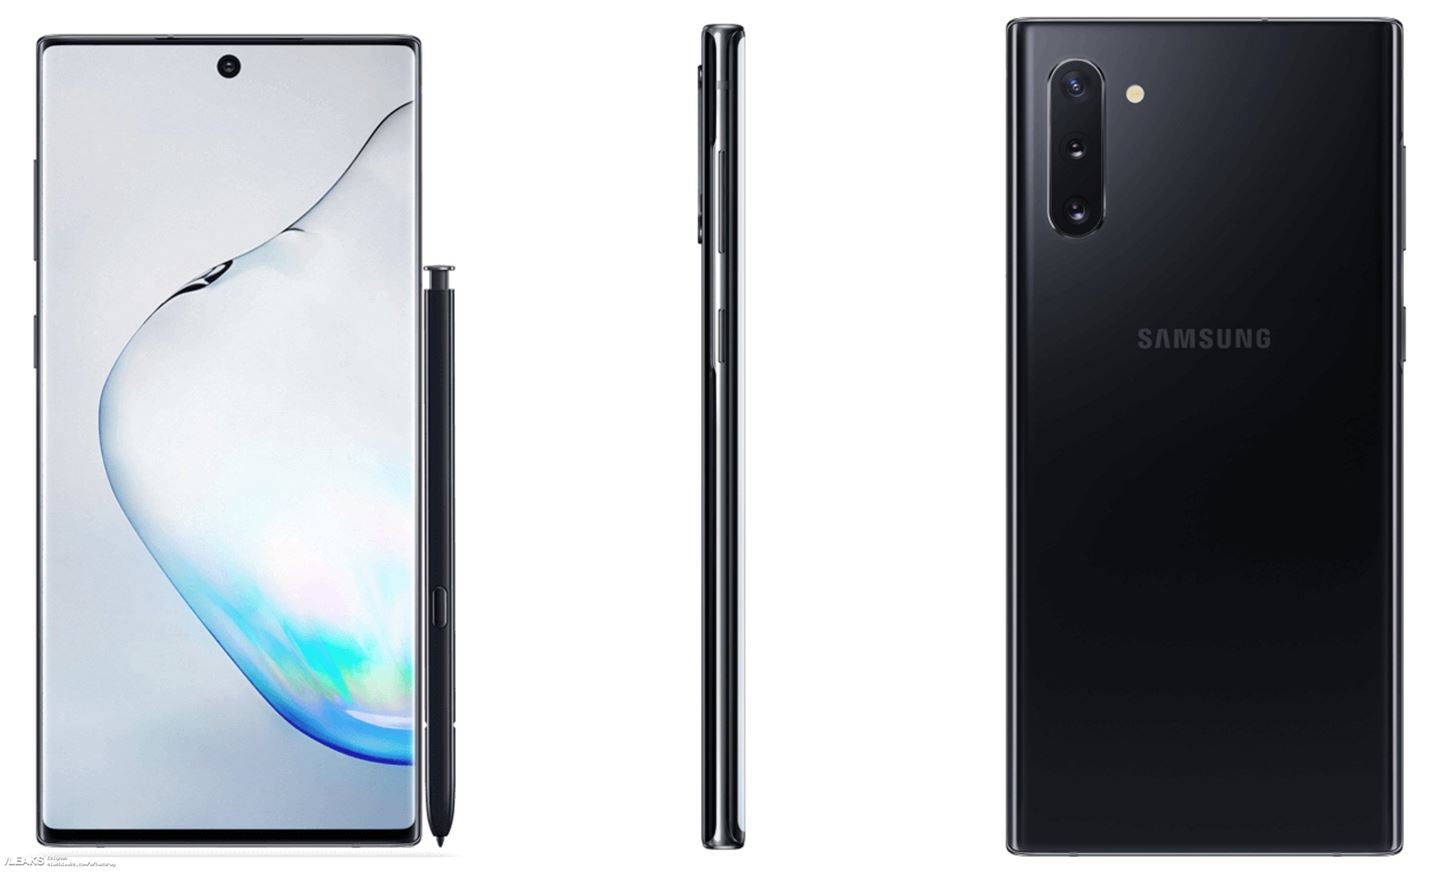 Everything we know about the Galaxy Note 10 and Note 10+